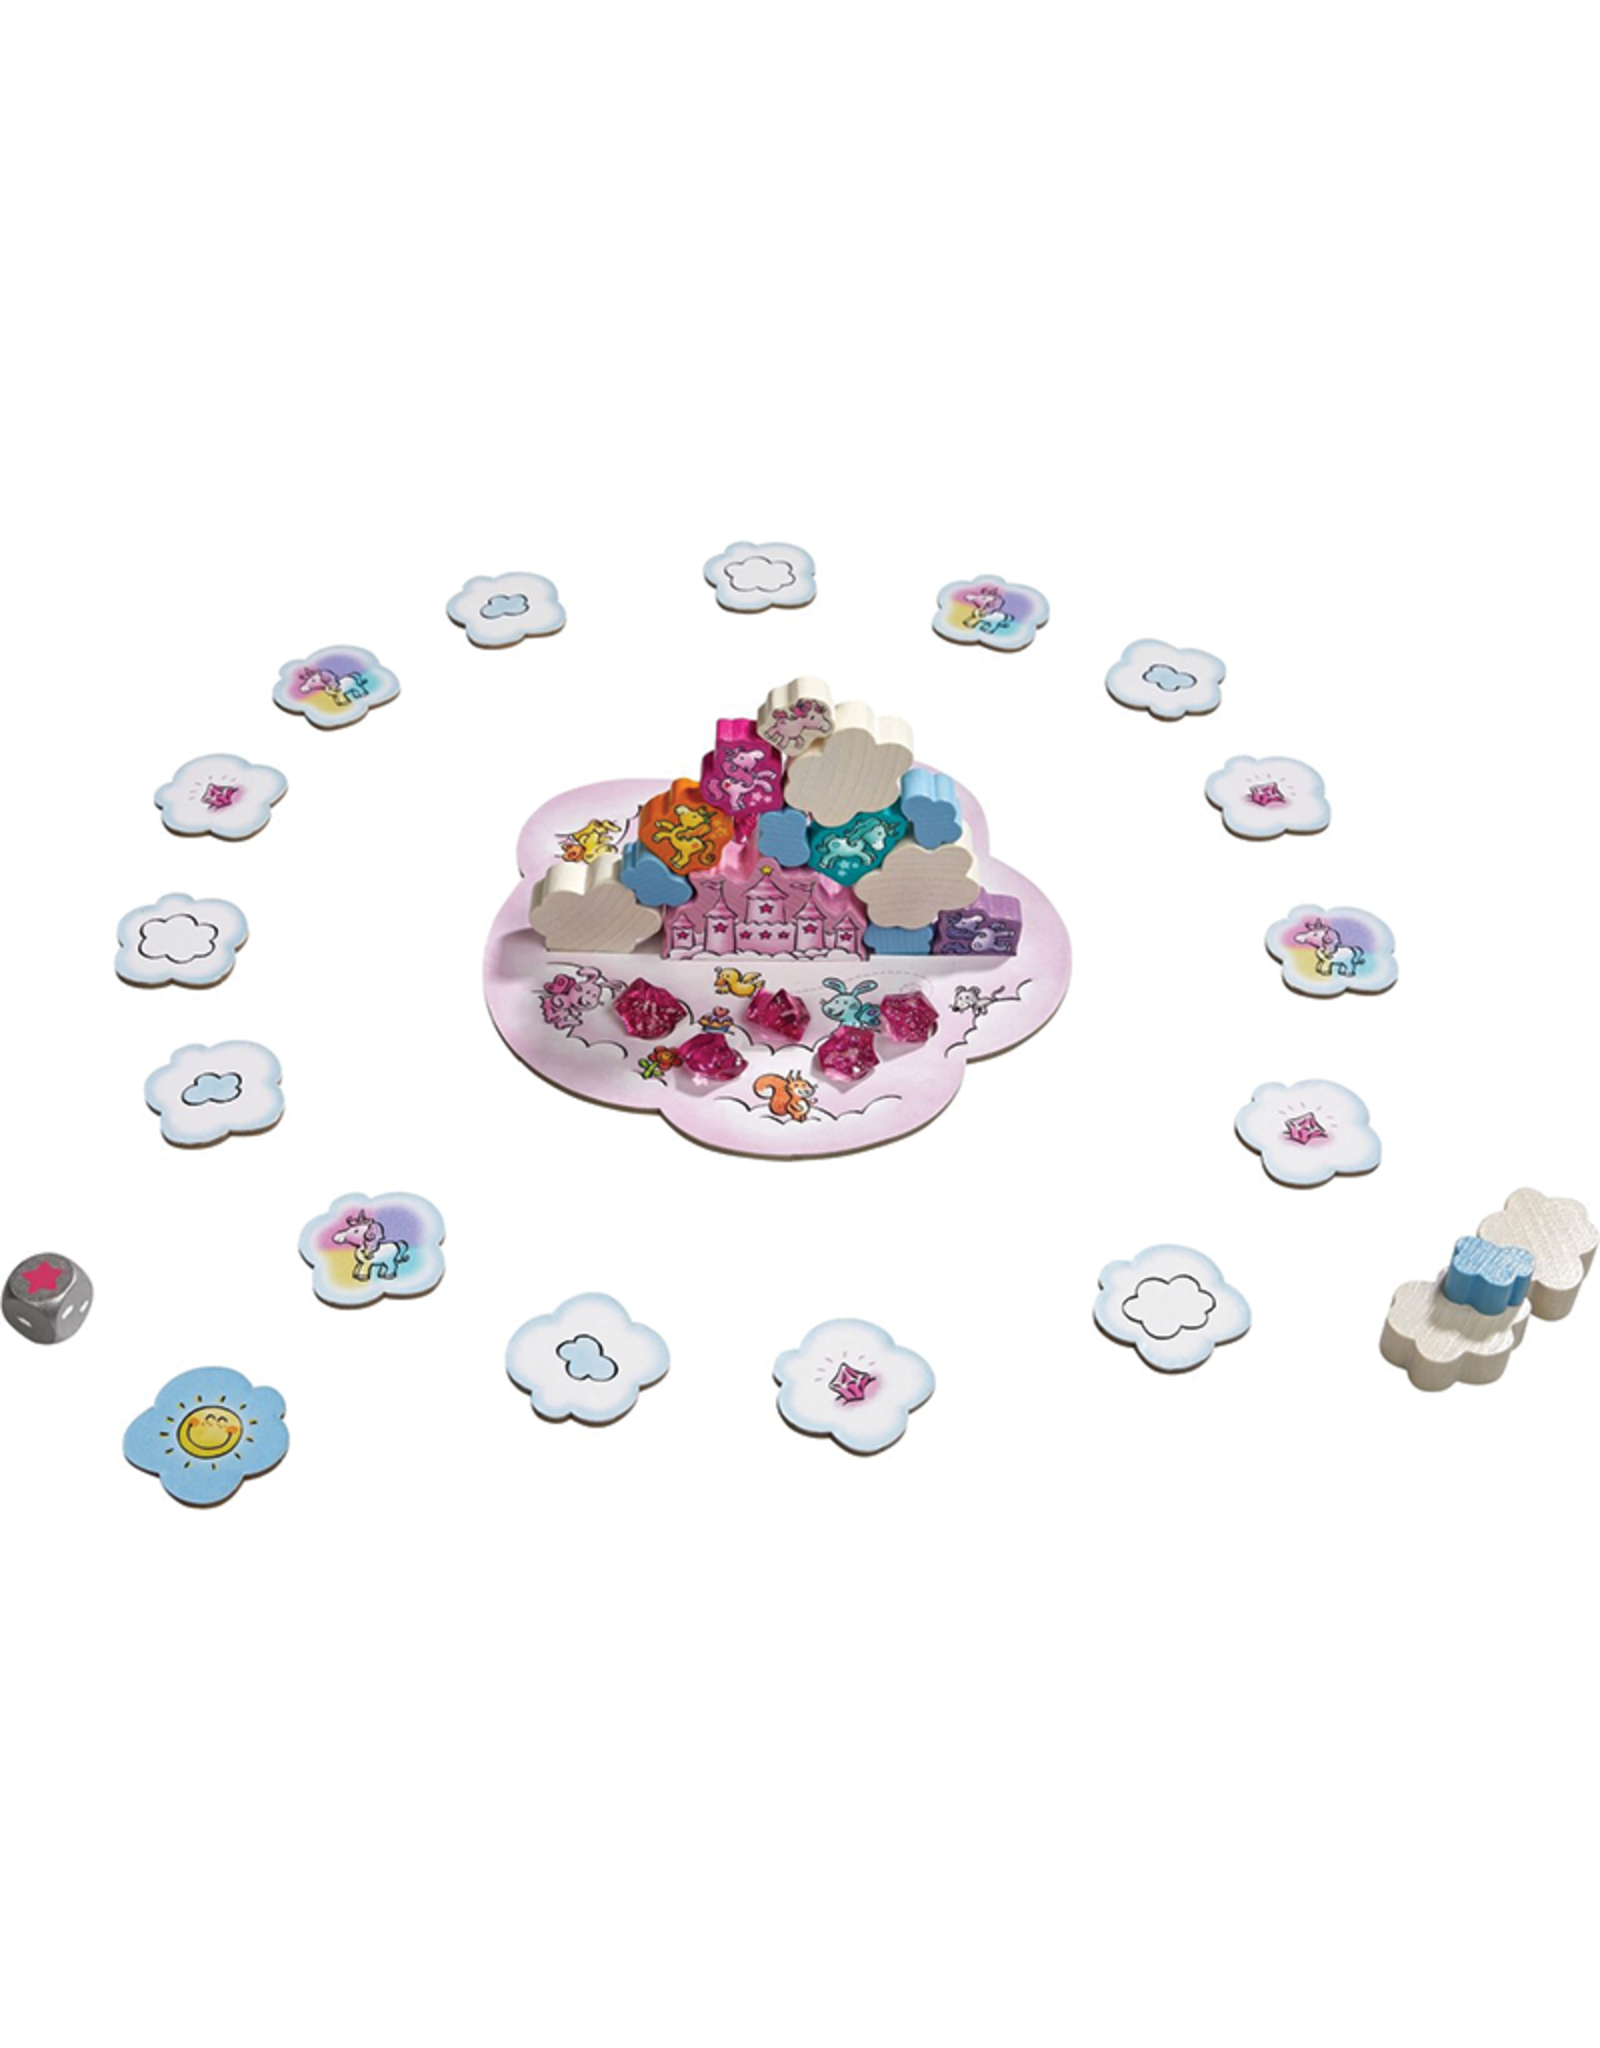 Haba Unicorn Glitterluck Cloud Stacking Game